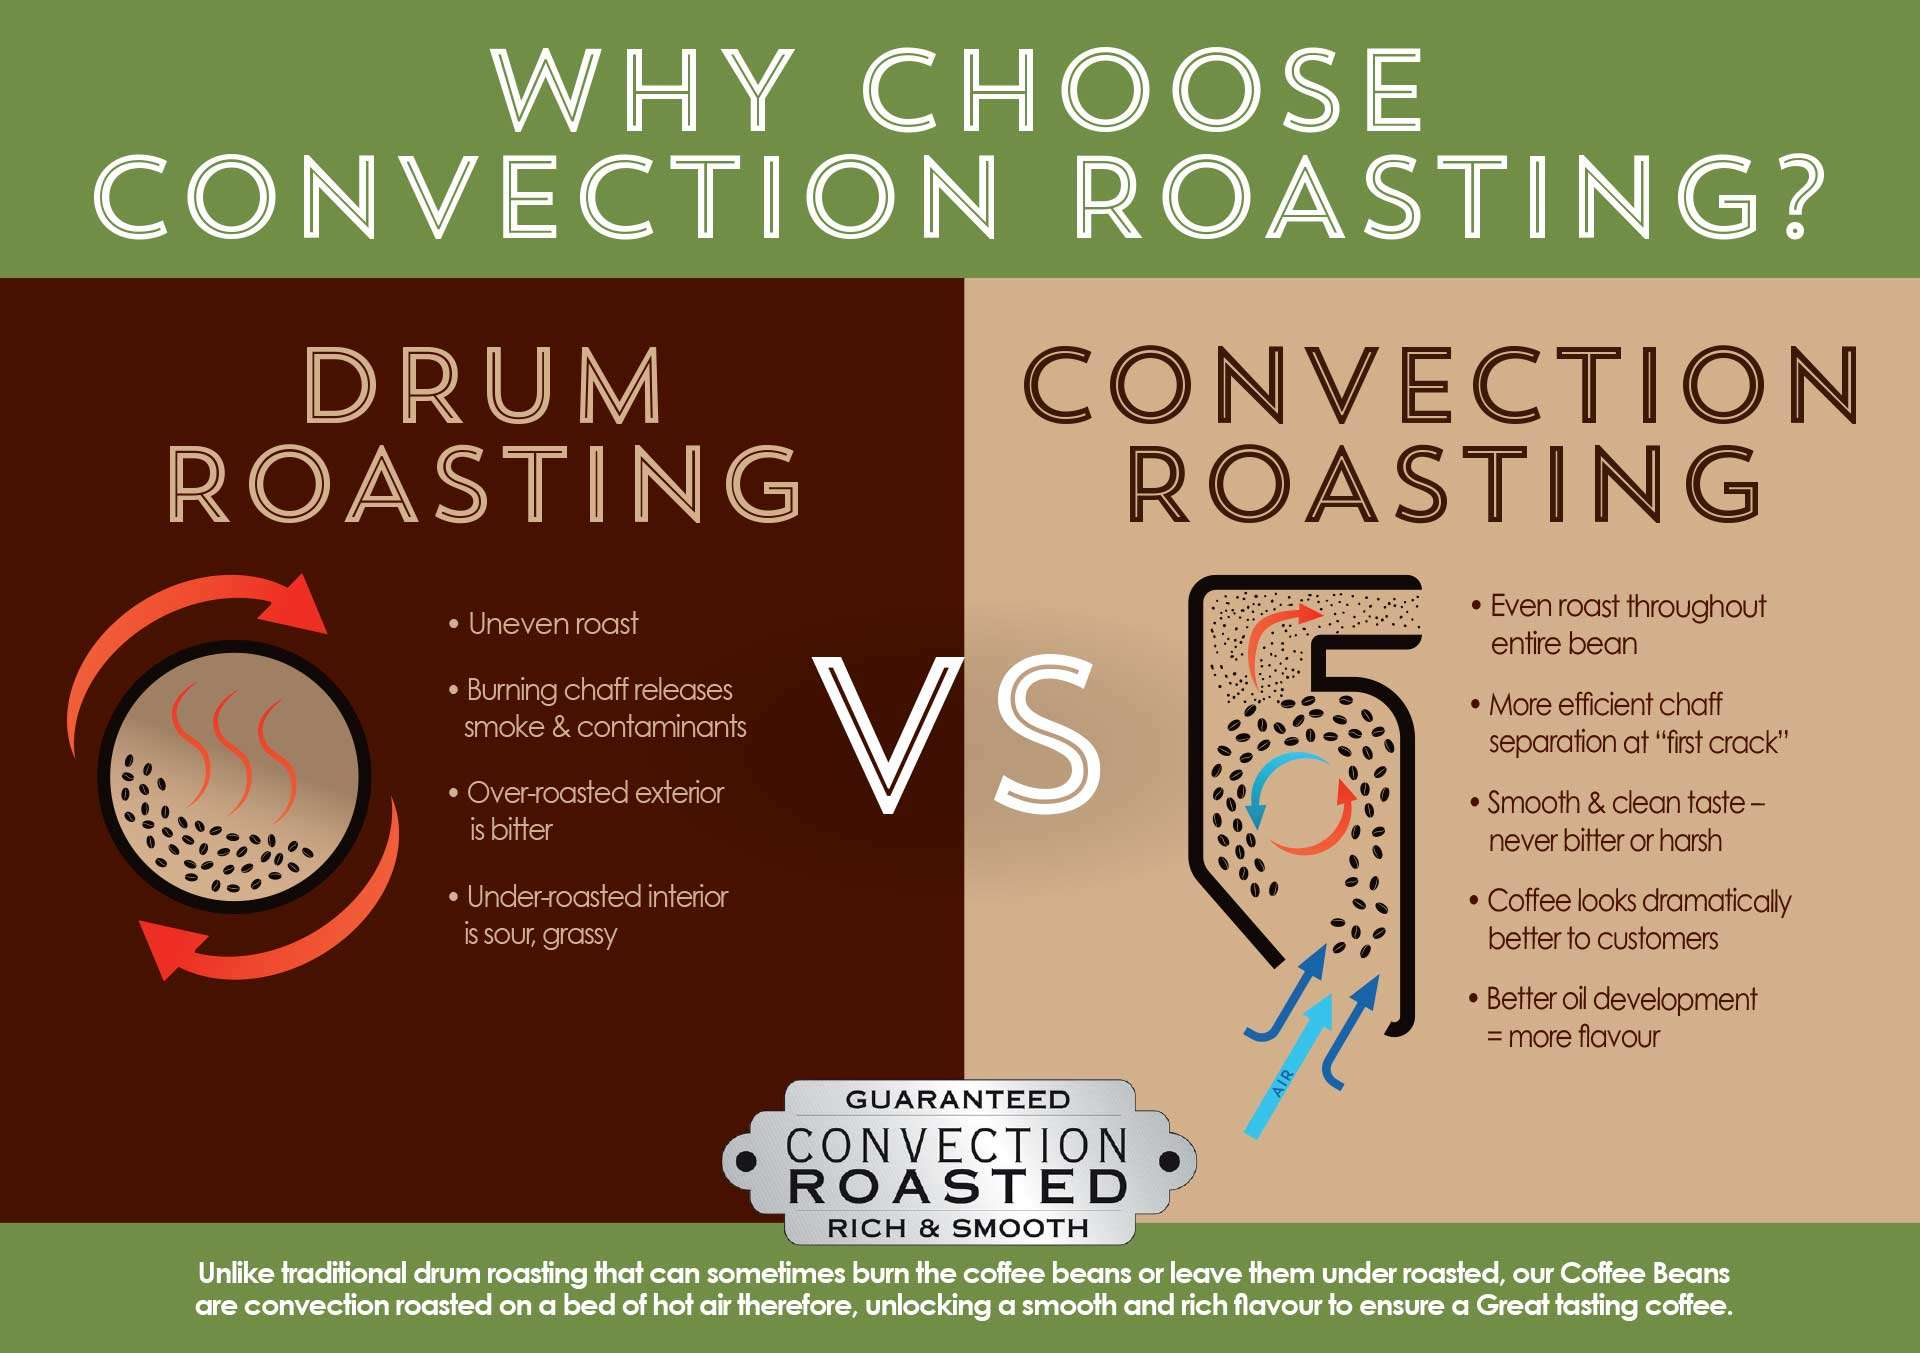 The convection roasting process